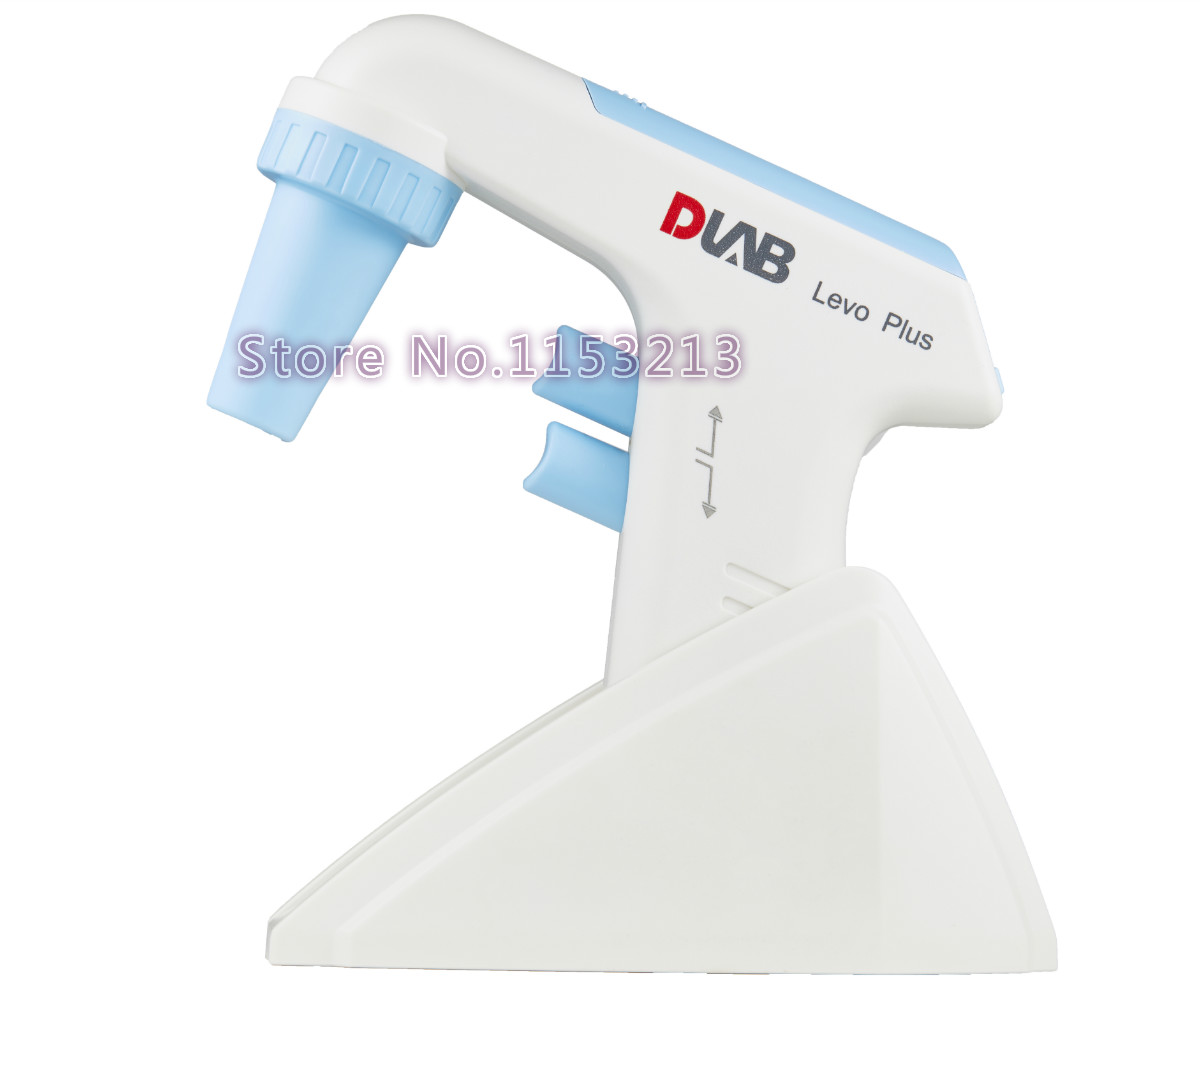 DLab Levo Plus Pipette Filler 0.1-100ml Dragon lab Large capacity electronic pipette pump pipette controller with AC adapterDLab Levo Plus Pipette Filler 0.1-100ml Dragon lab Large capacity electronic pipette pump pipette controller with AC adapter